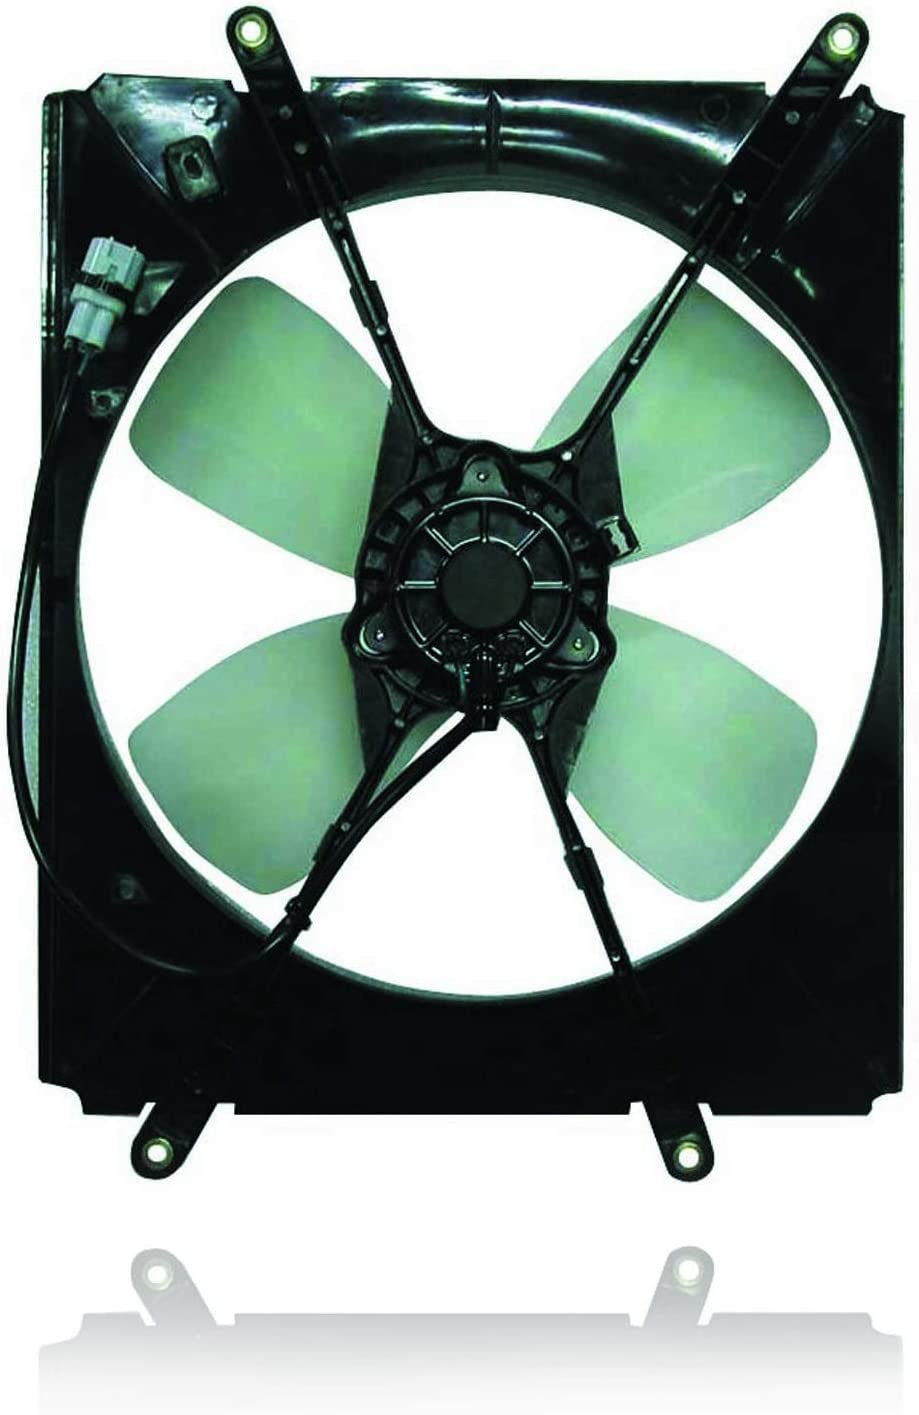 Engine Cooling Fan Assembly - Cooling Direct For/Fit 92-96 Toyota Camry 4Cy - 1636311020